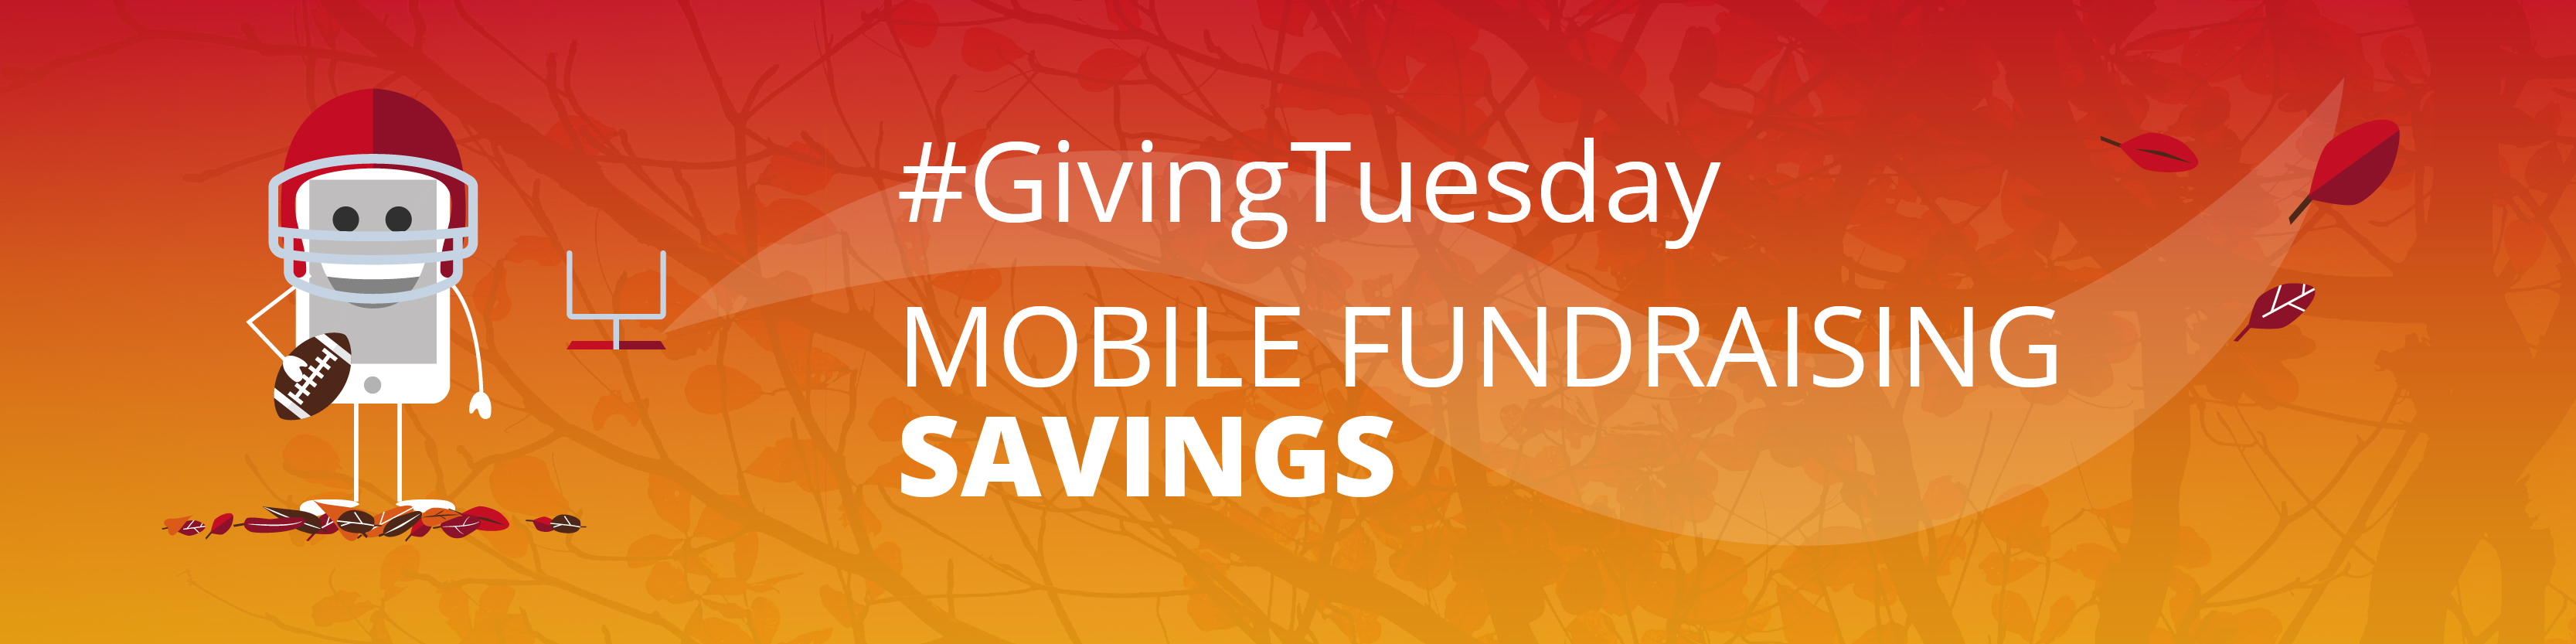 #GivingTuesday Mobile Fundraising Savings